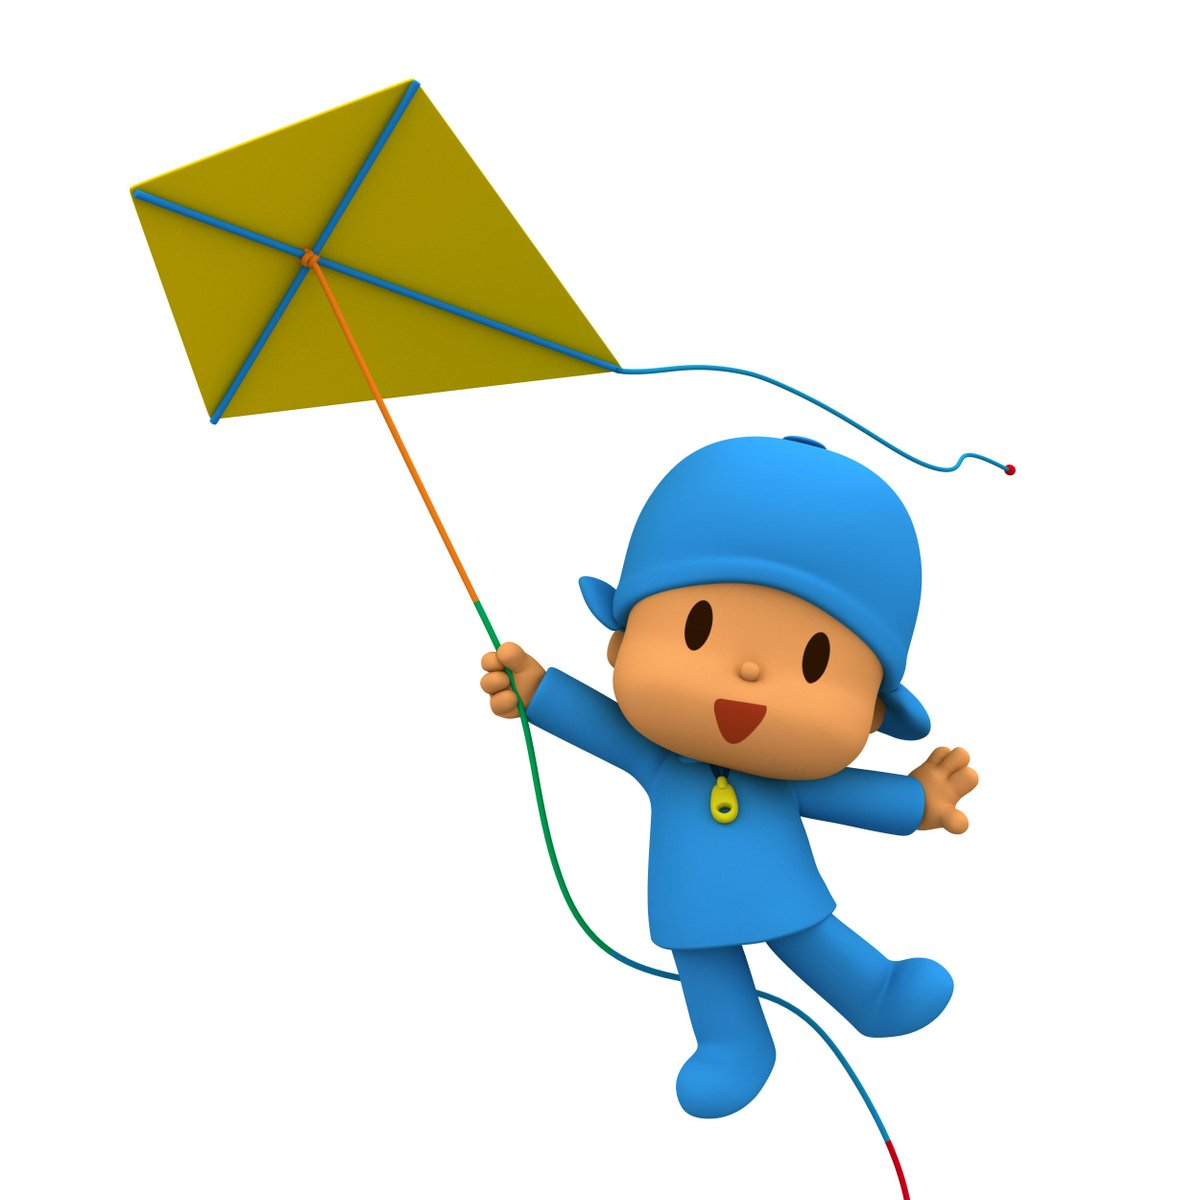 Pocoyo On Twitter Do You Enjoy Flying A Kite This Is The Perfect Game For You Try It Http T Co Wbbdpjq8qi Http T Co F9ef78fy4p